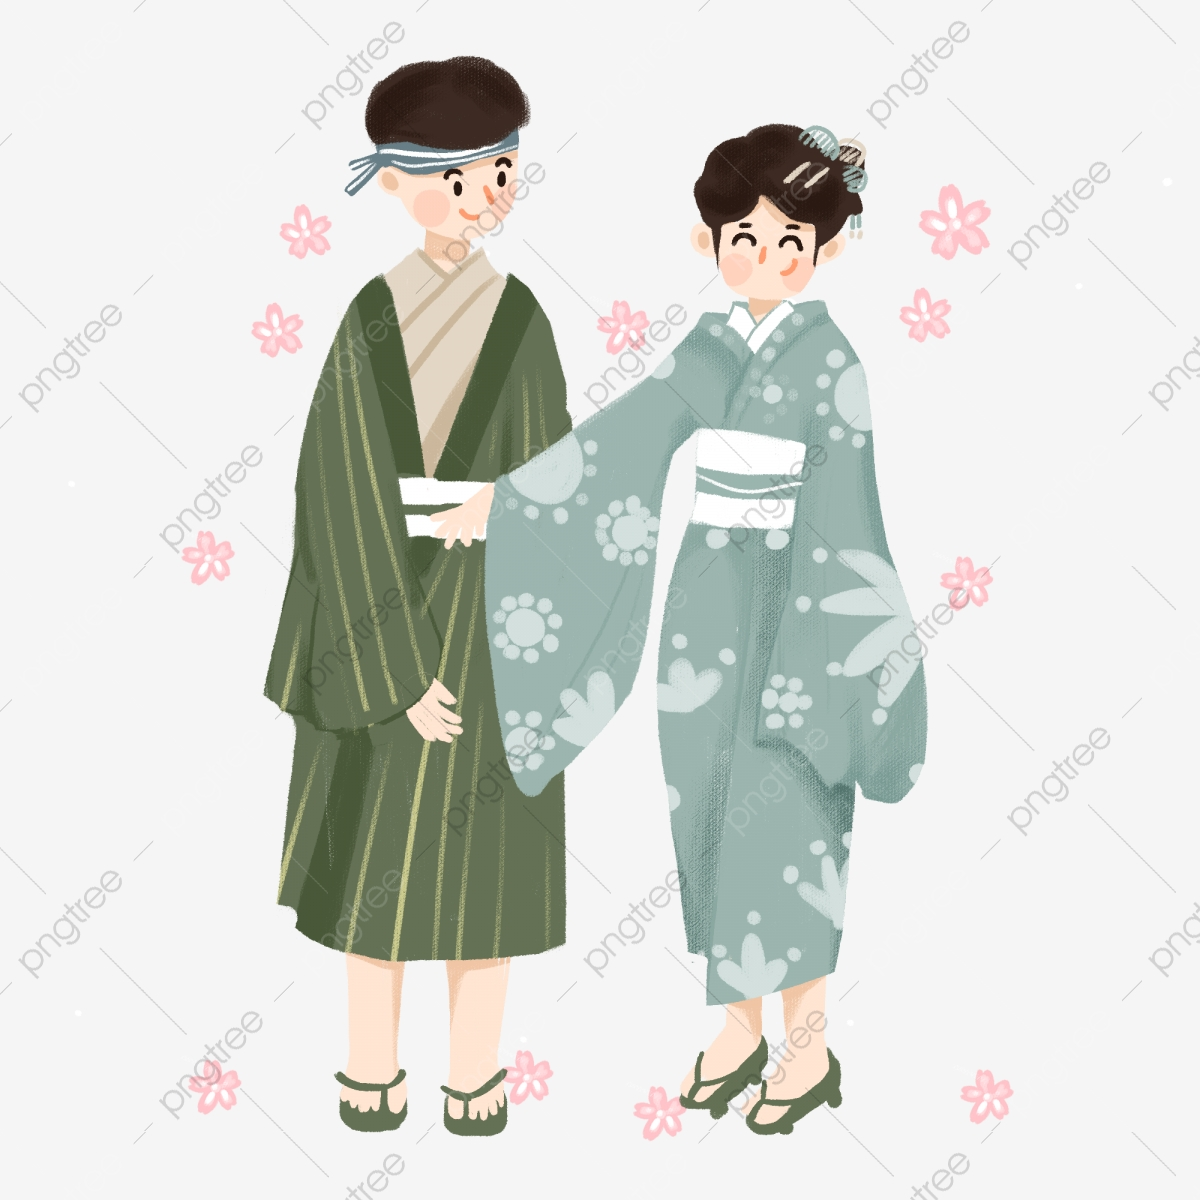 Japanese In National Dress With A Flag. Man And Woman In Traditional..  Royalty Free Cliparts, Vectors, And Stock Illustration. Image 96984269.